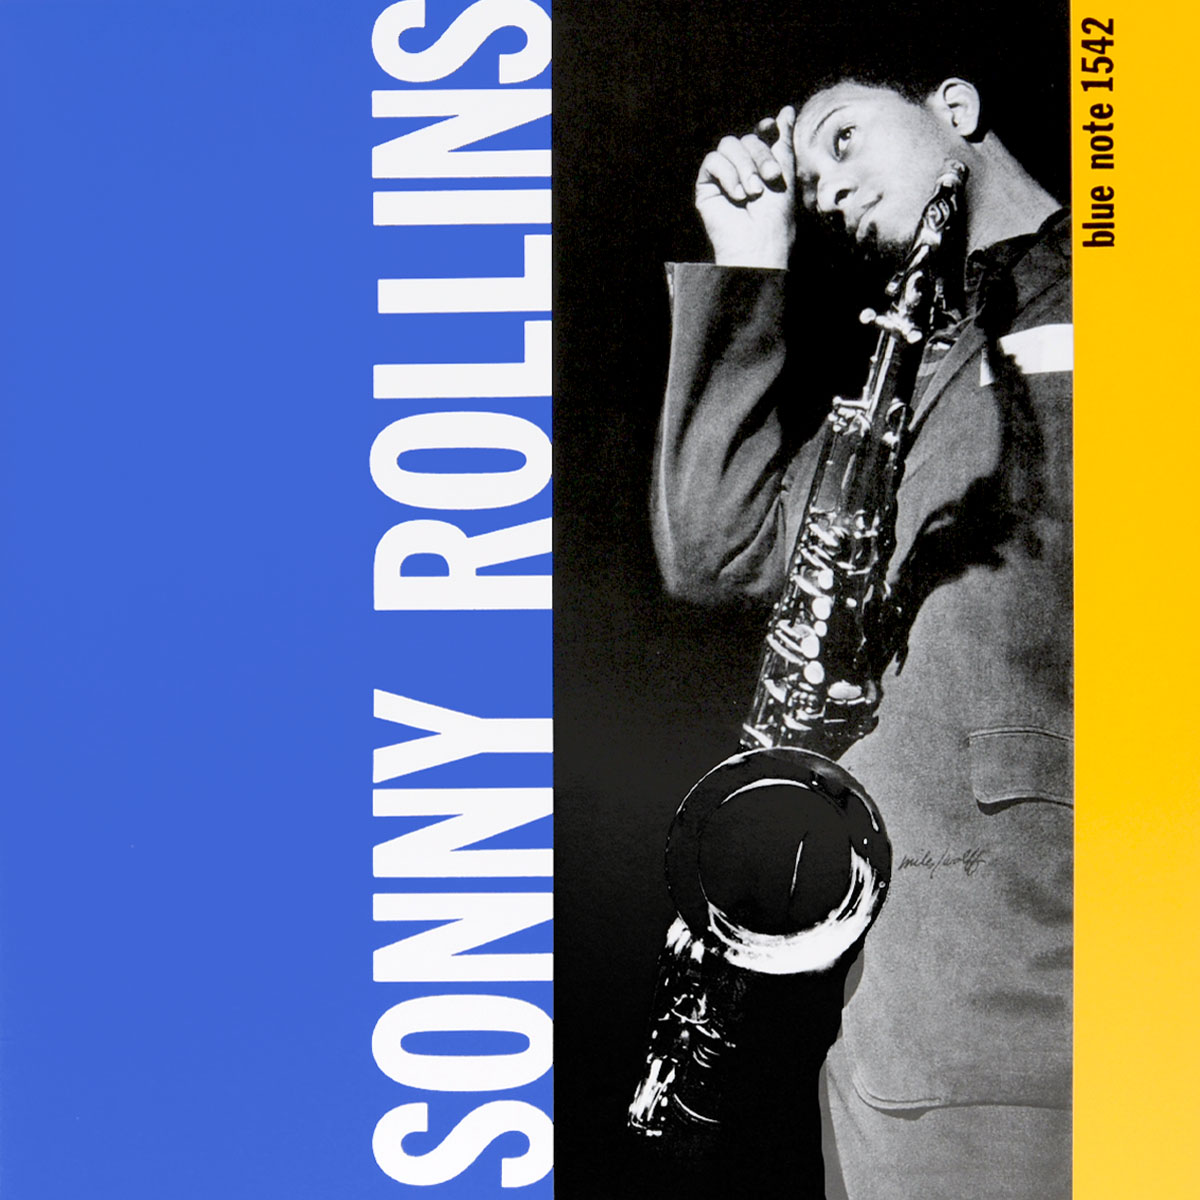 Сонни Роллинз Sonny Rollins. Volume 1 (LP) сонни роллинз sonny rollins road shows vol 3